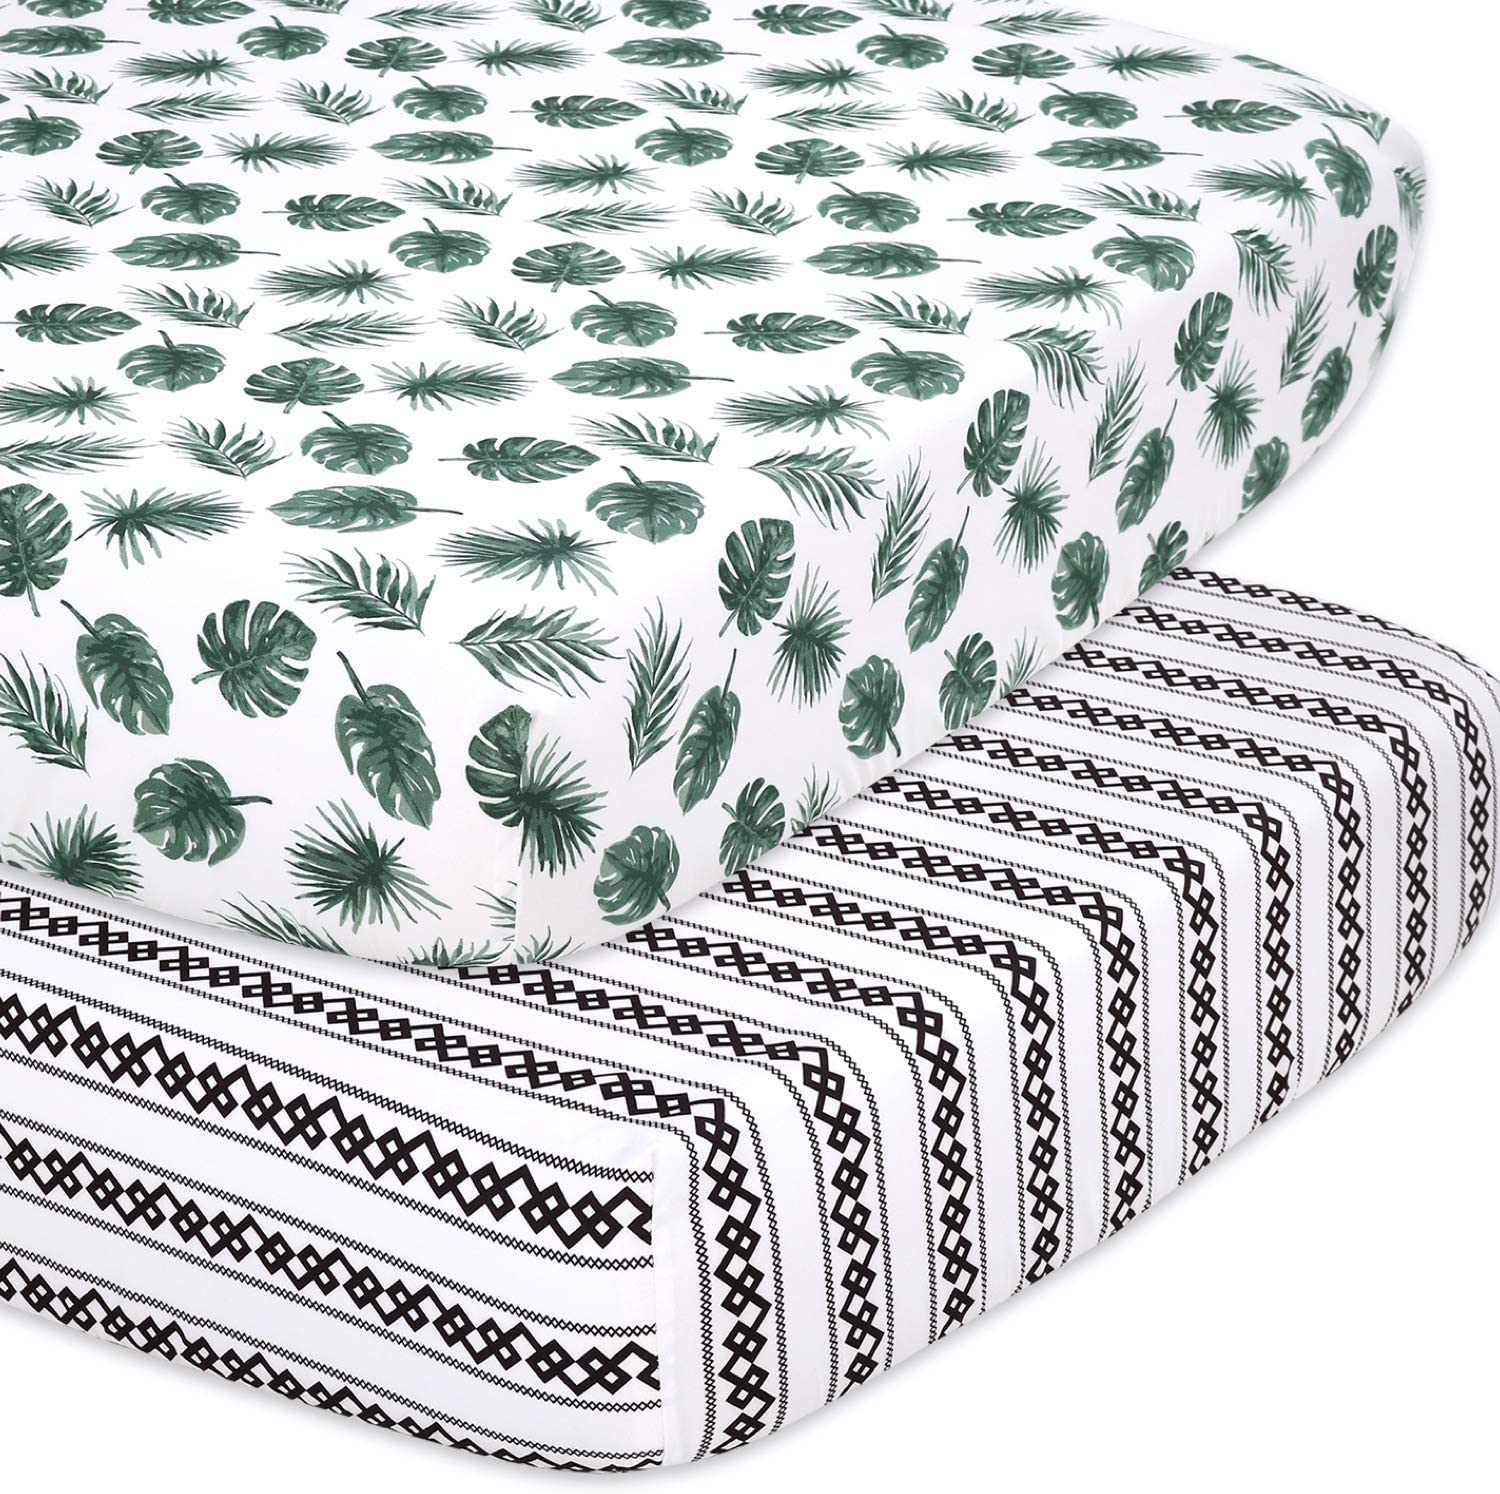 The Peanutshell Fitted Crib Sheet Set for Baby Boys or Girls - 2 Pack - Botanical Leaf & Stripe